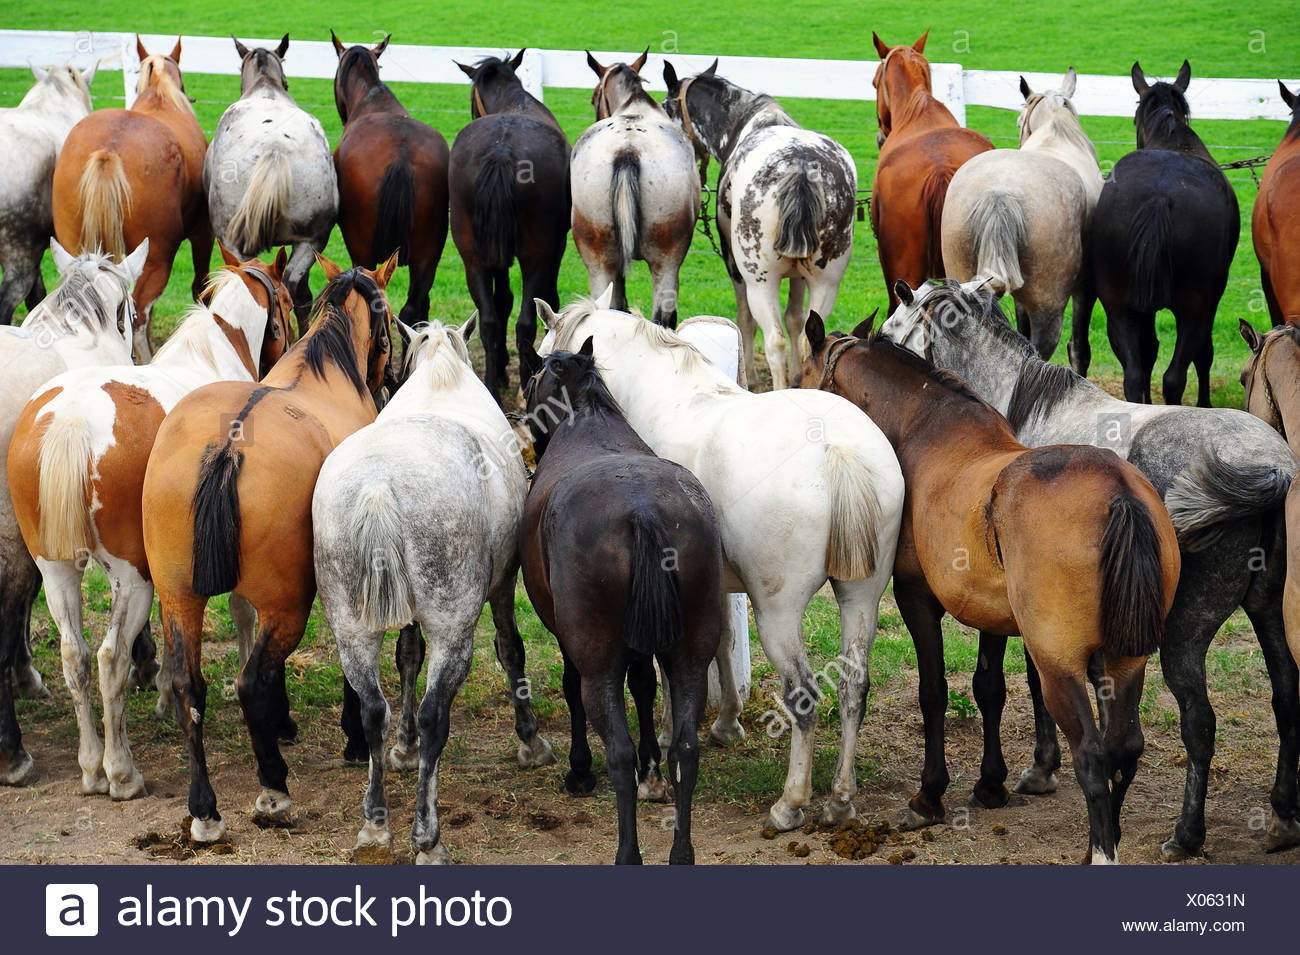 Jesus Maria, Argentina, horses are tied up side by side - Stock Image